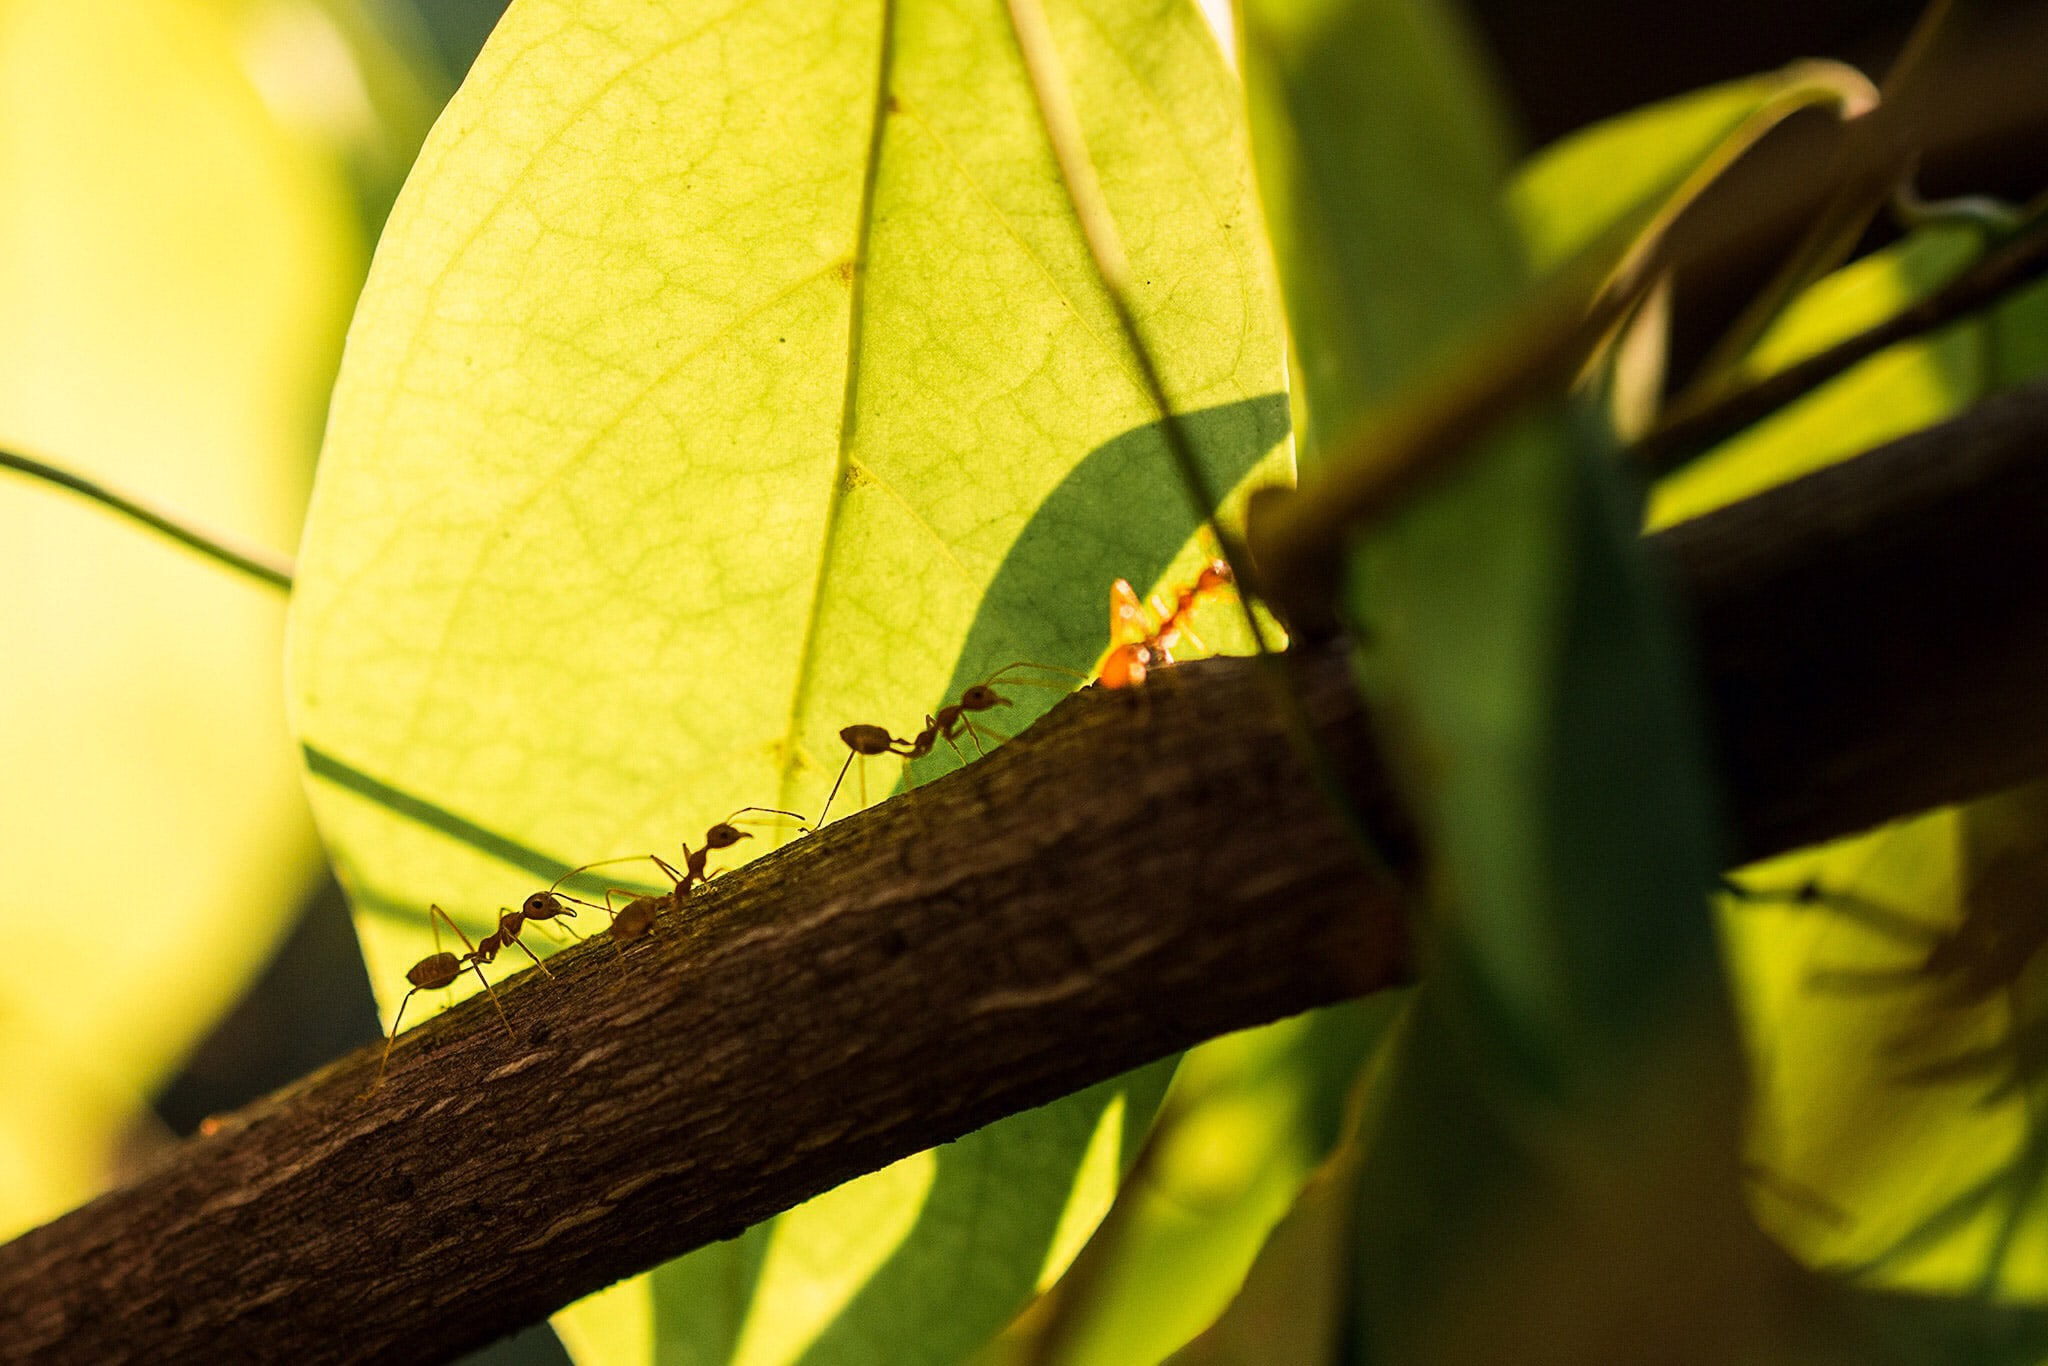 <p>Fire ants on a branch</p>